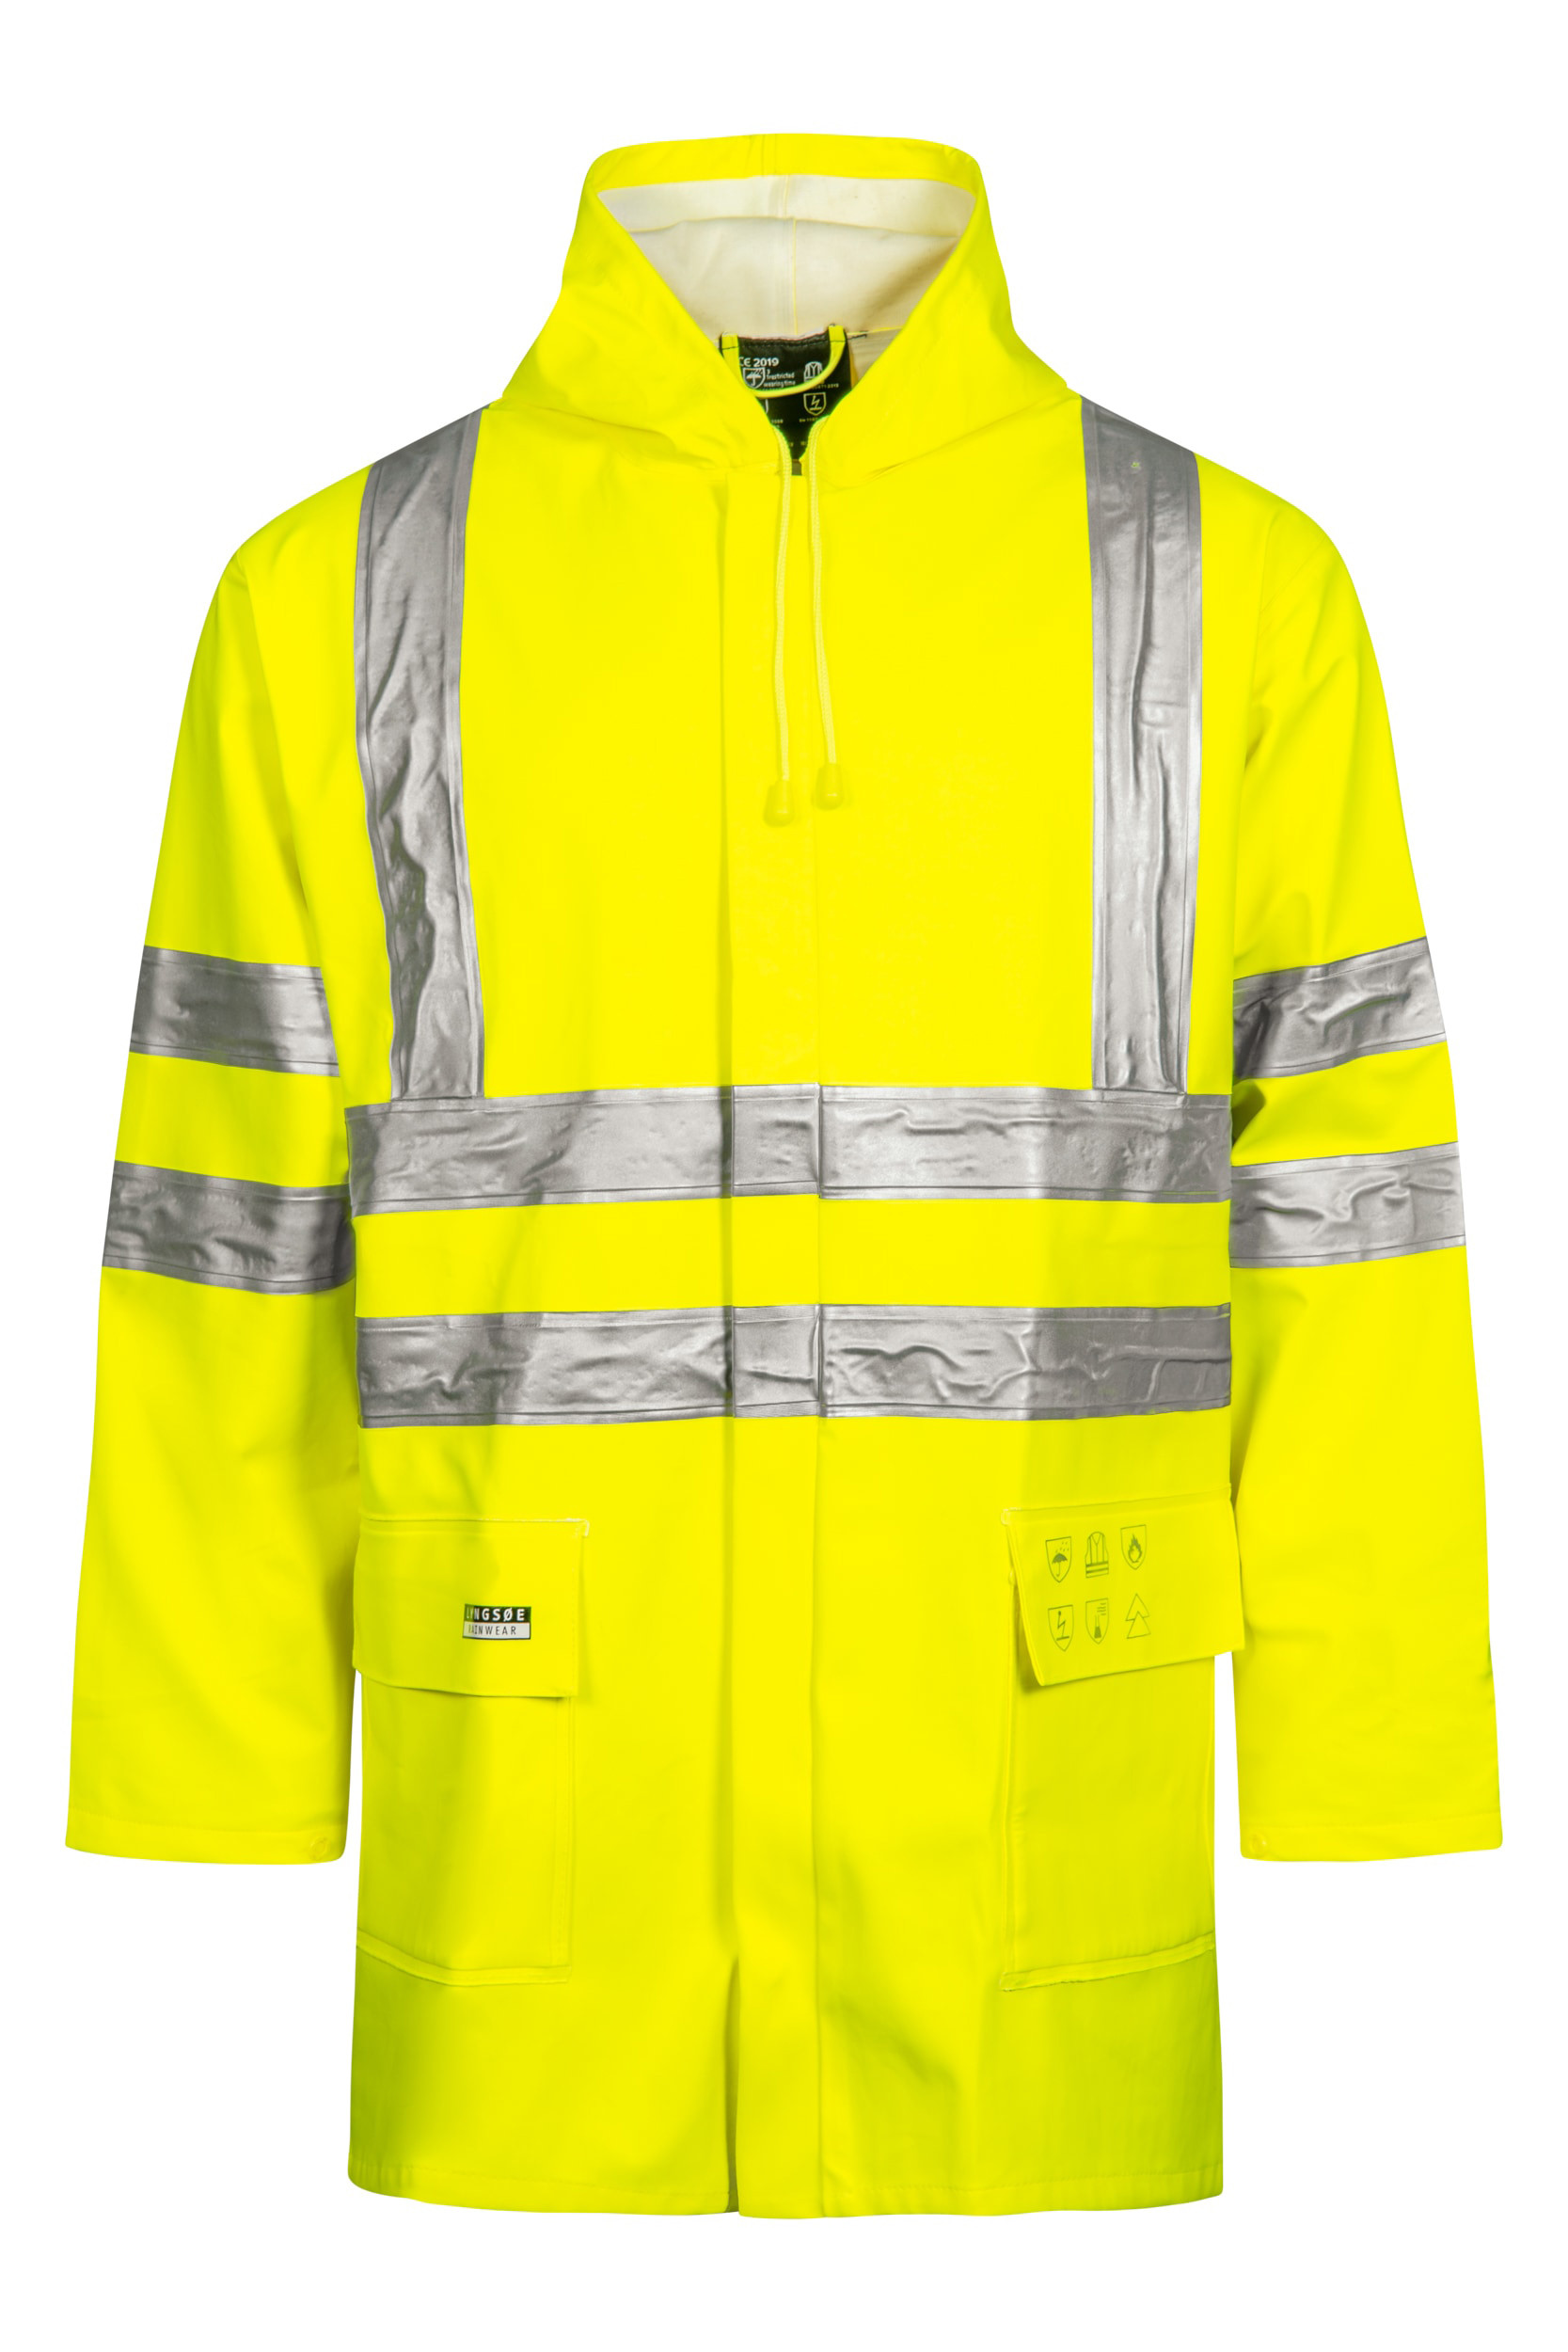 High Viz Arc Flash Yellow Waterproof Jacket 21.1cal/cm2